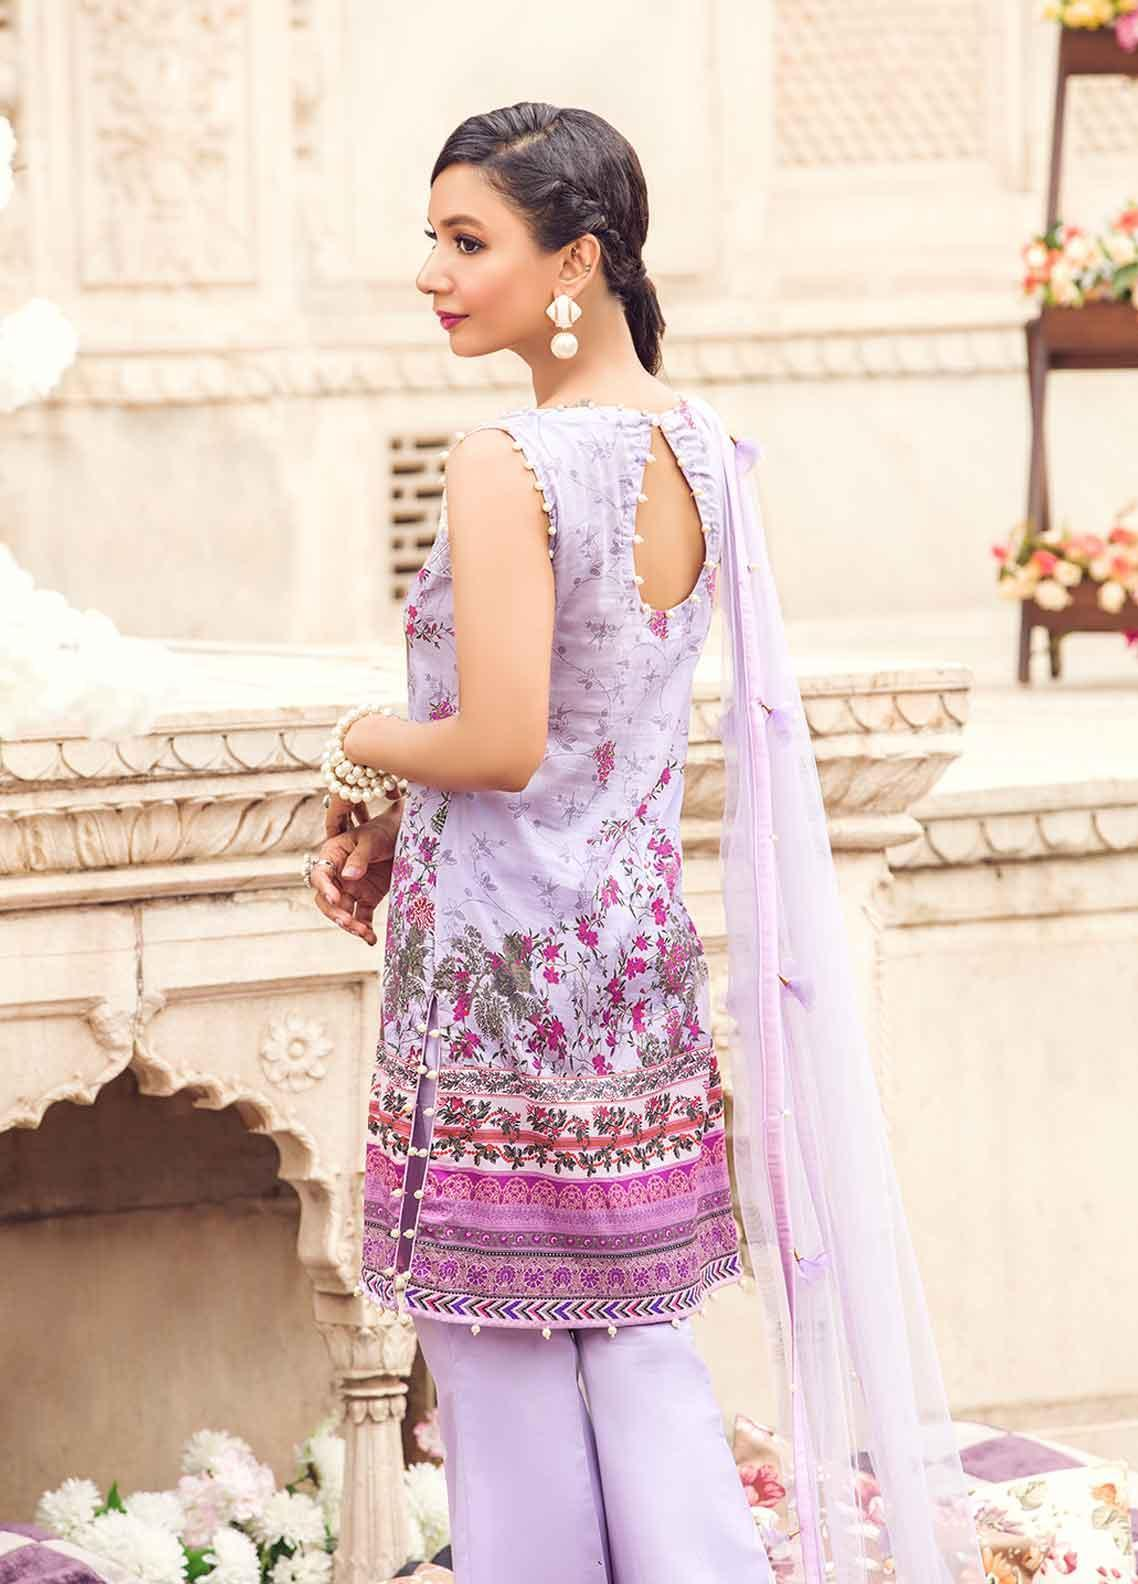 acfbb4cca3 Gulaal Embroidered Lawn Unstitched 3 Piece Suit GL19-L2 03 PEARLESUQE - Mid  Summer Collection